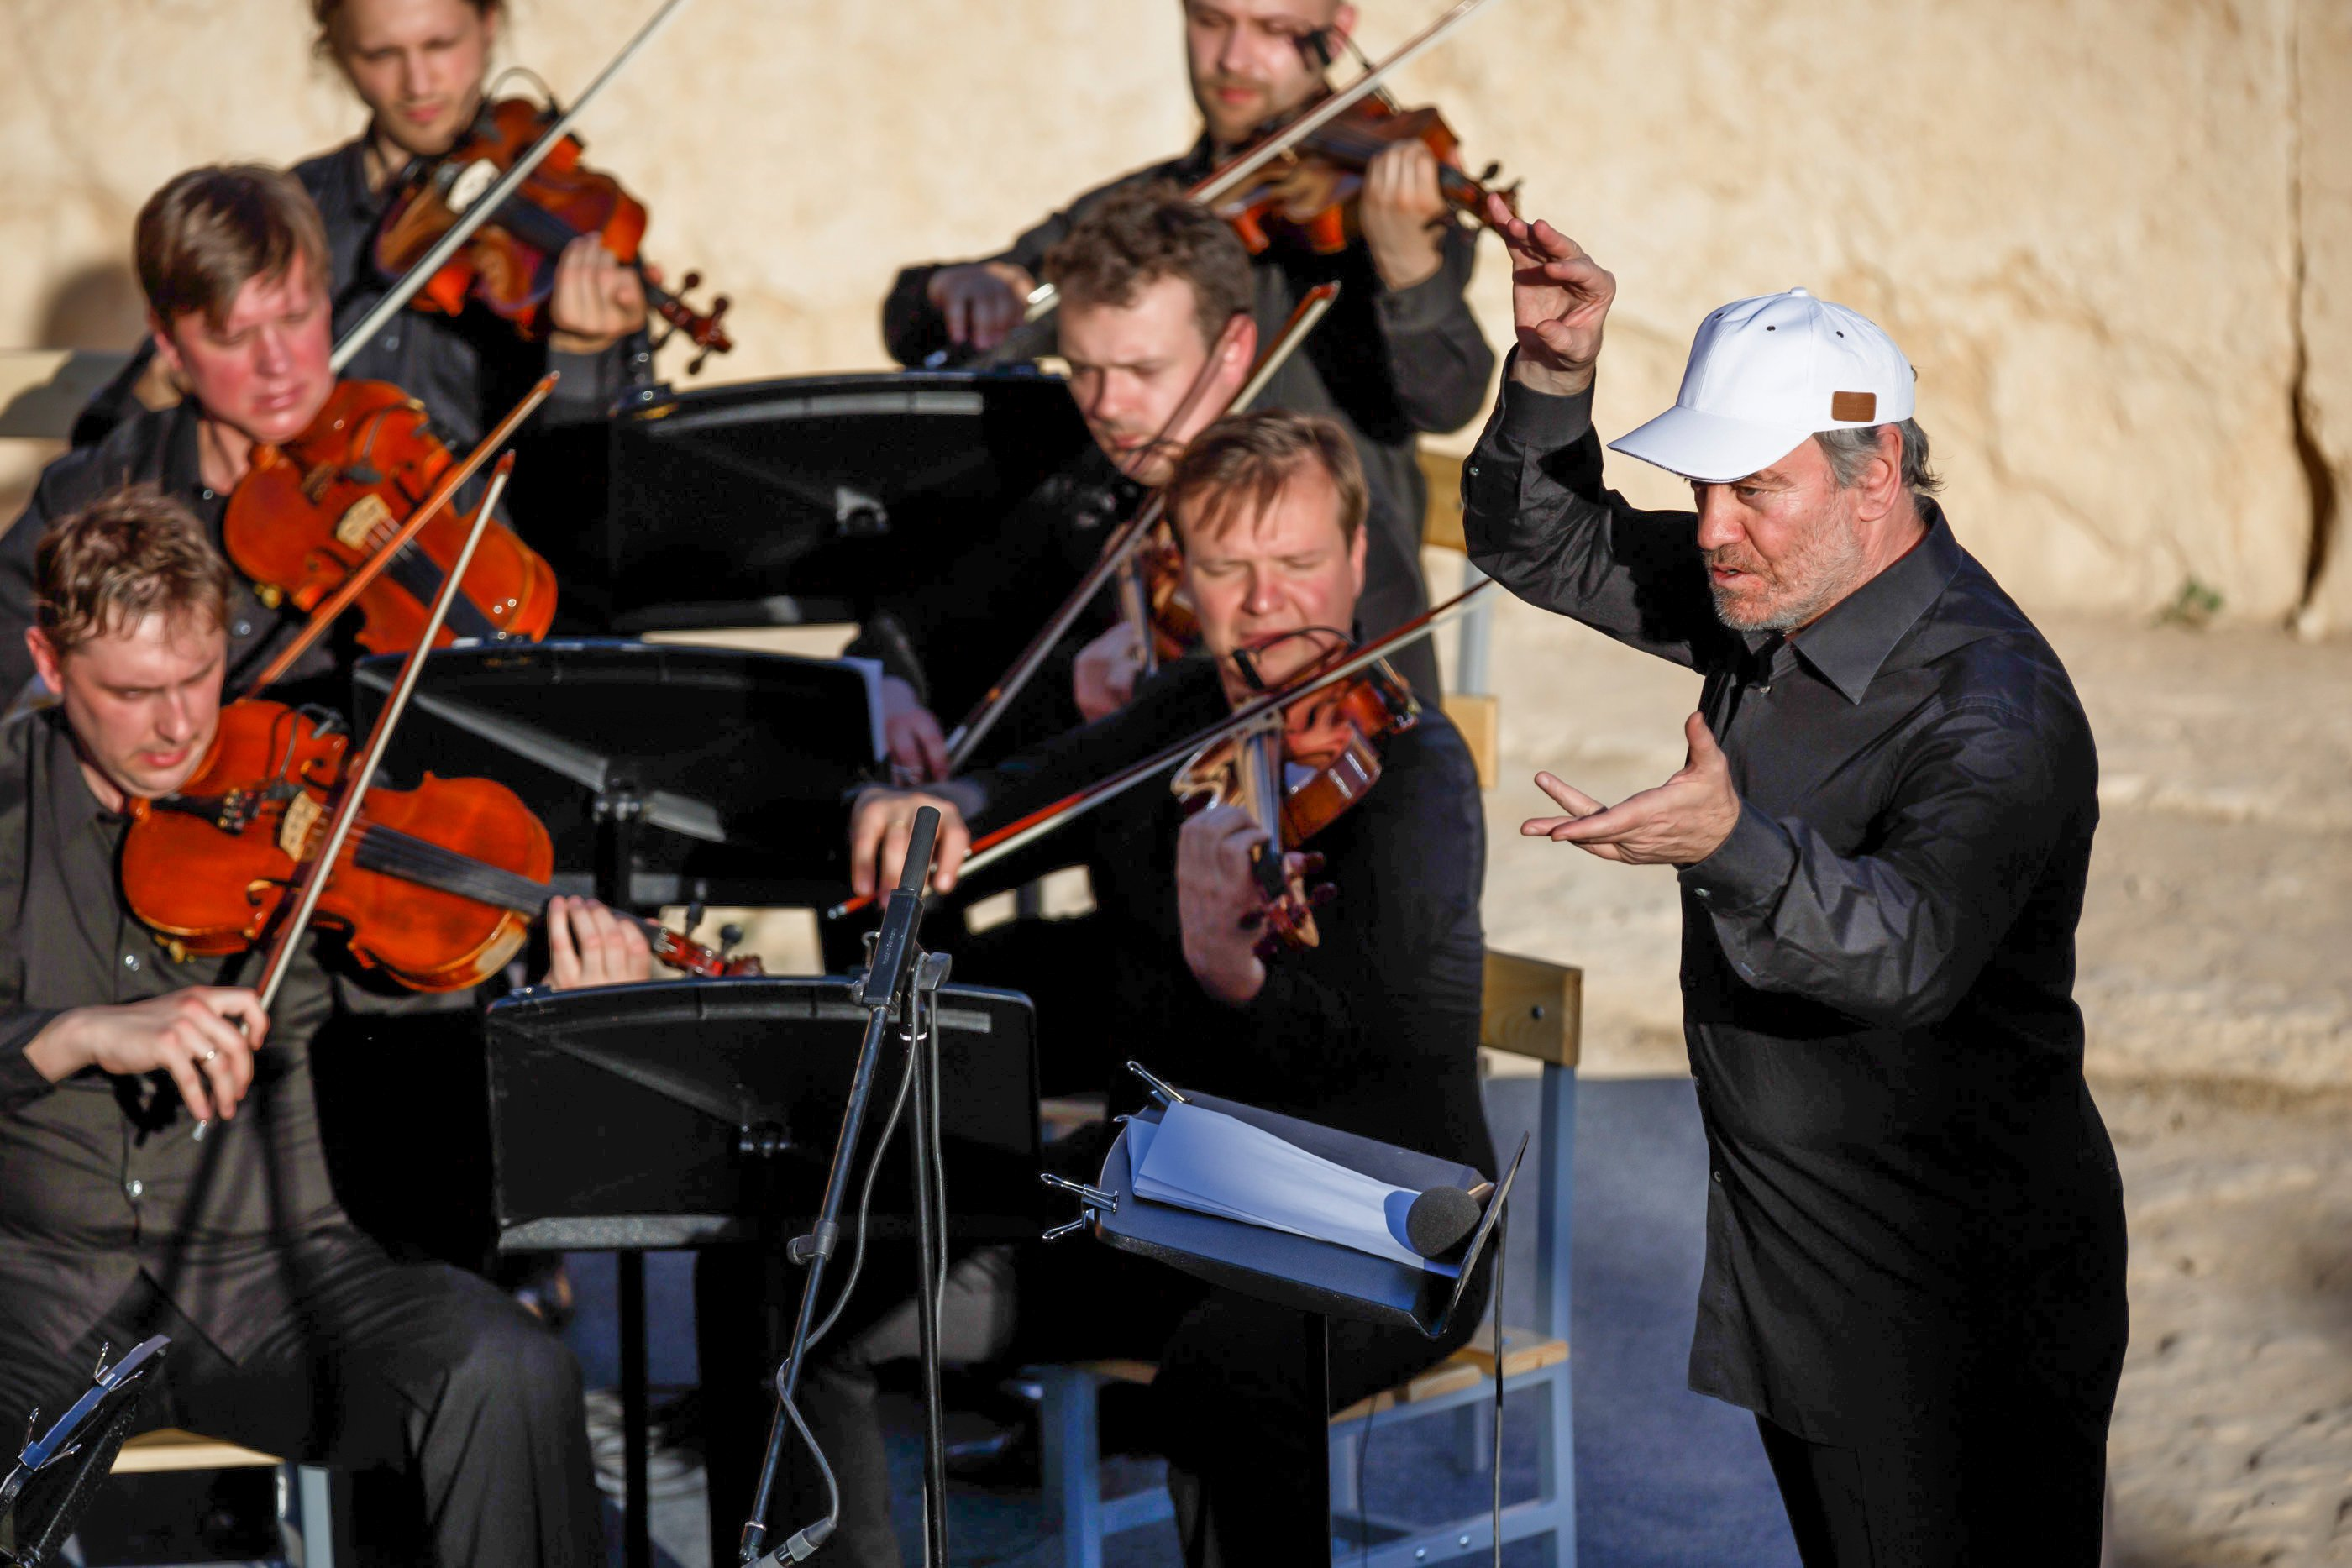 In this photo released by Russian Ministry of Defence, conductor Valery Gergiev leads a concert by the Mariinsky Theater Orchestra in the Palmyra amphitheater in Syria, on May 5, 2016.